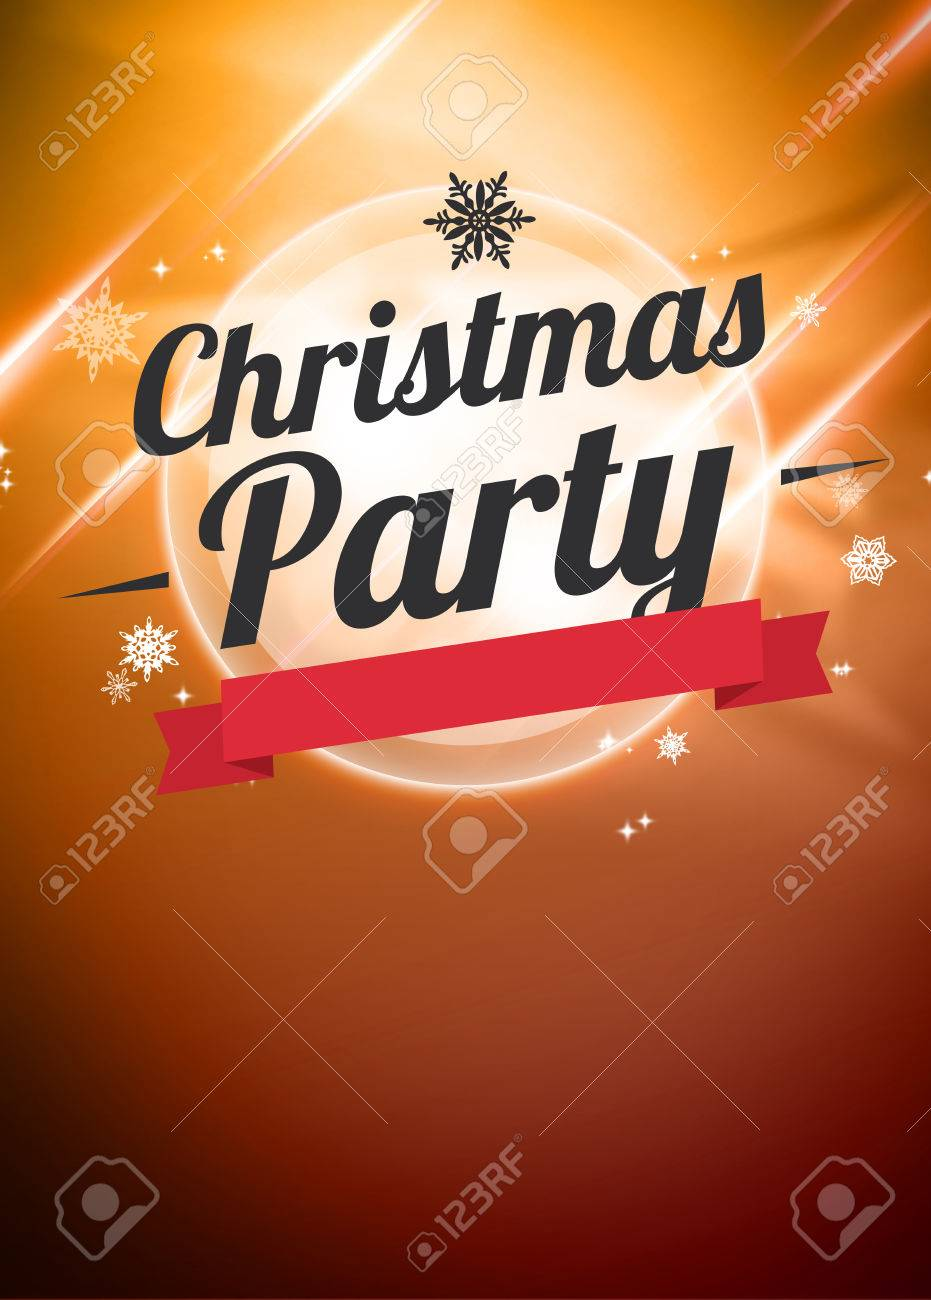 holiday office party stock photos images royalty holiday holiday office party christmas party invitation poster or flyer background empty space